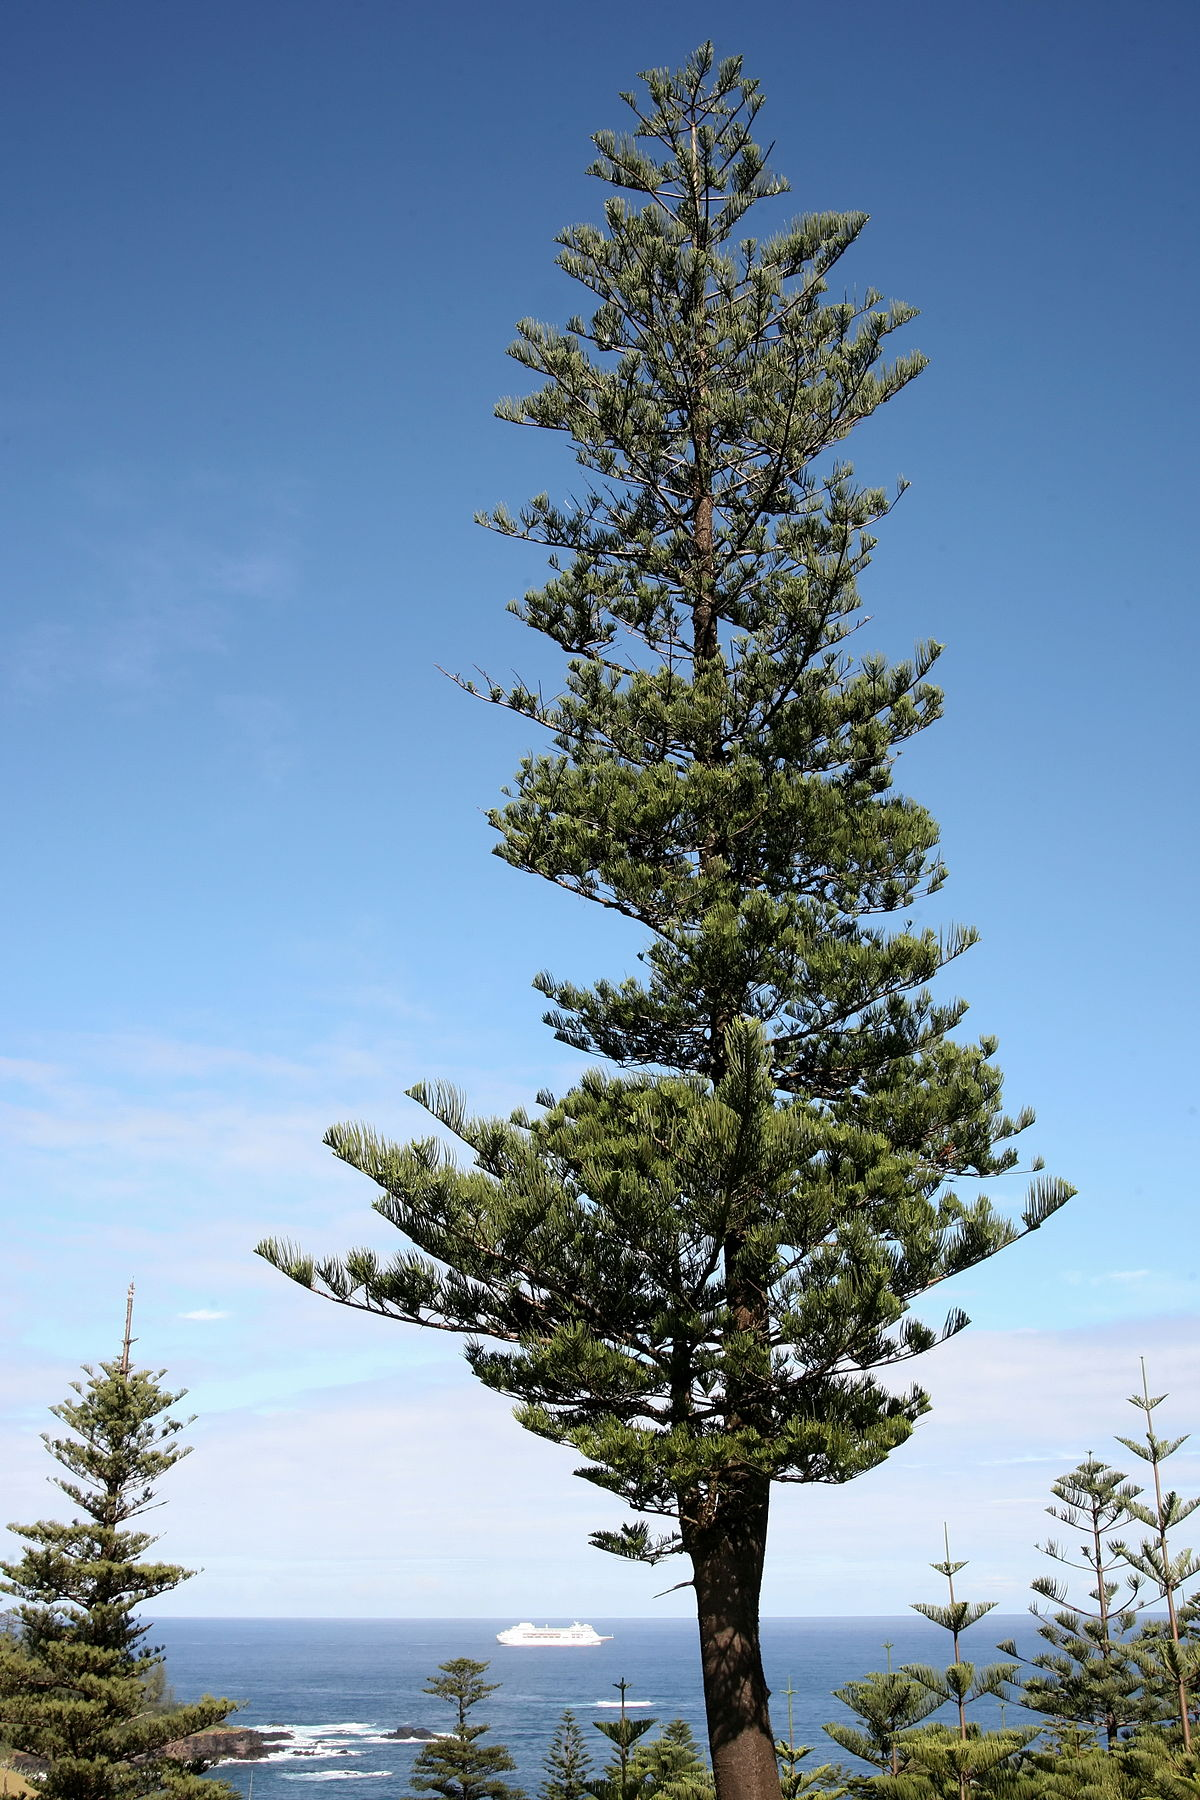 And information network araucaria heterophylla norfolk pine - And Information Network Araucaria Heterophylla Norfolk Pine 4